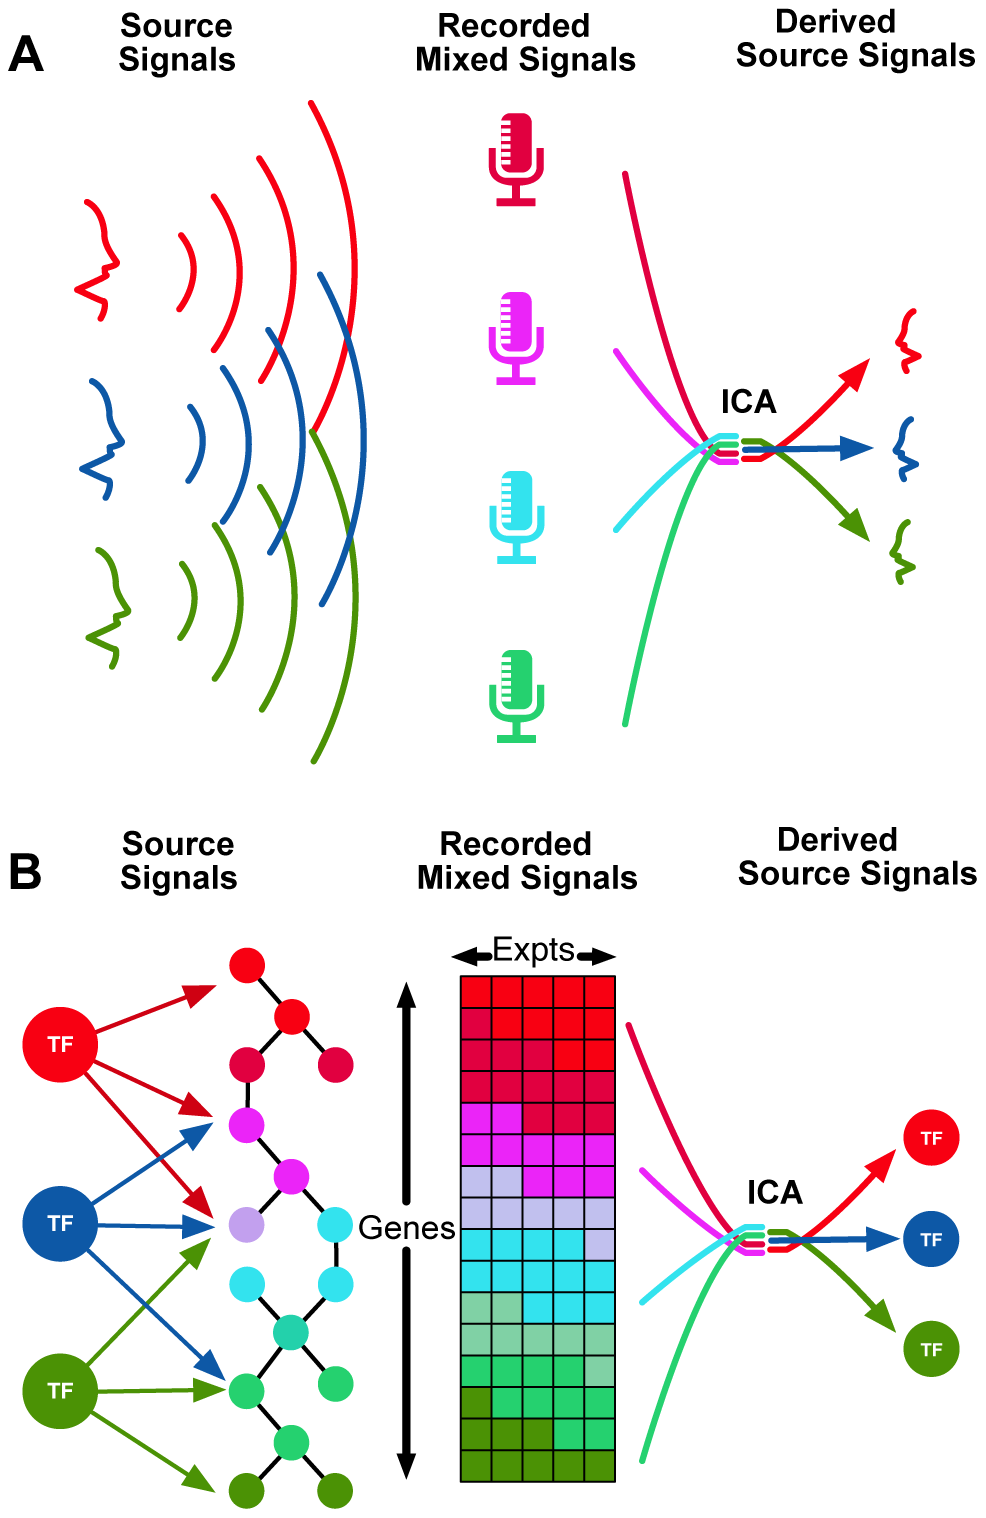 Independent Component Analysis (ICA) can be used to identify transcriptional modules from gene expression data.